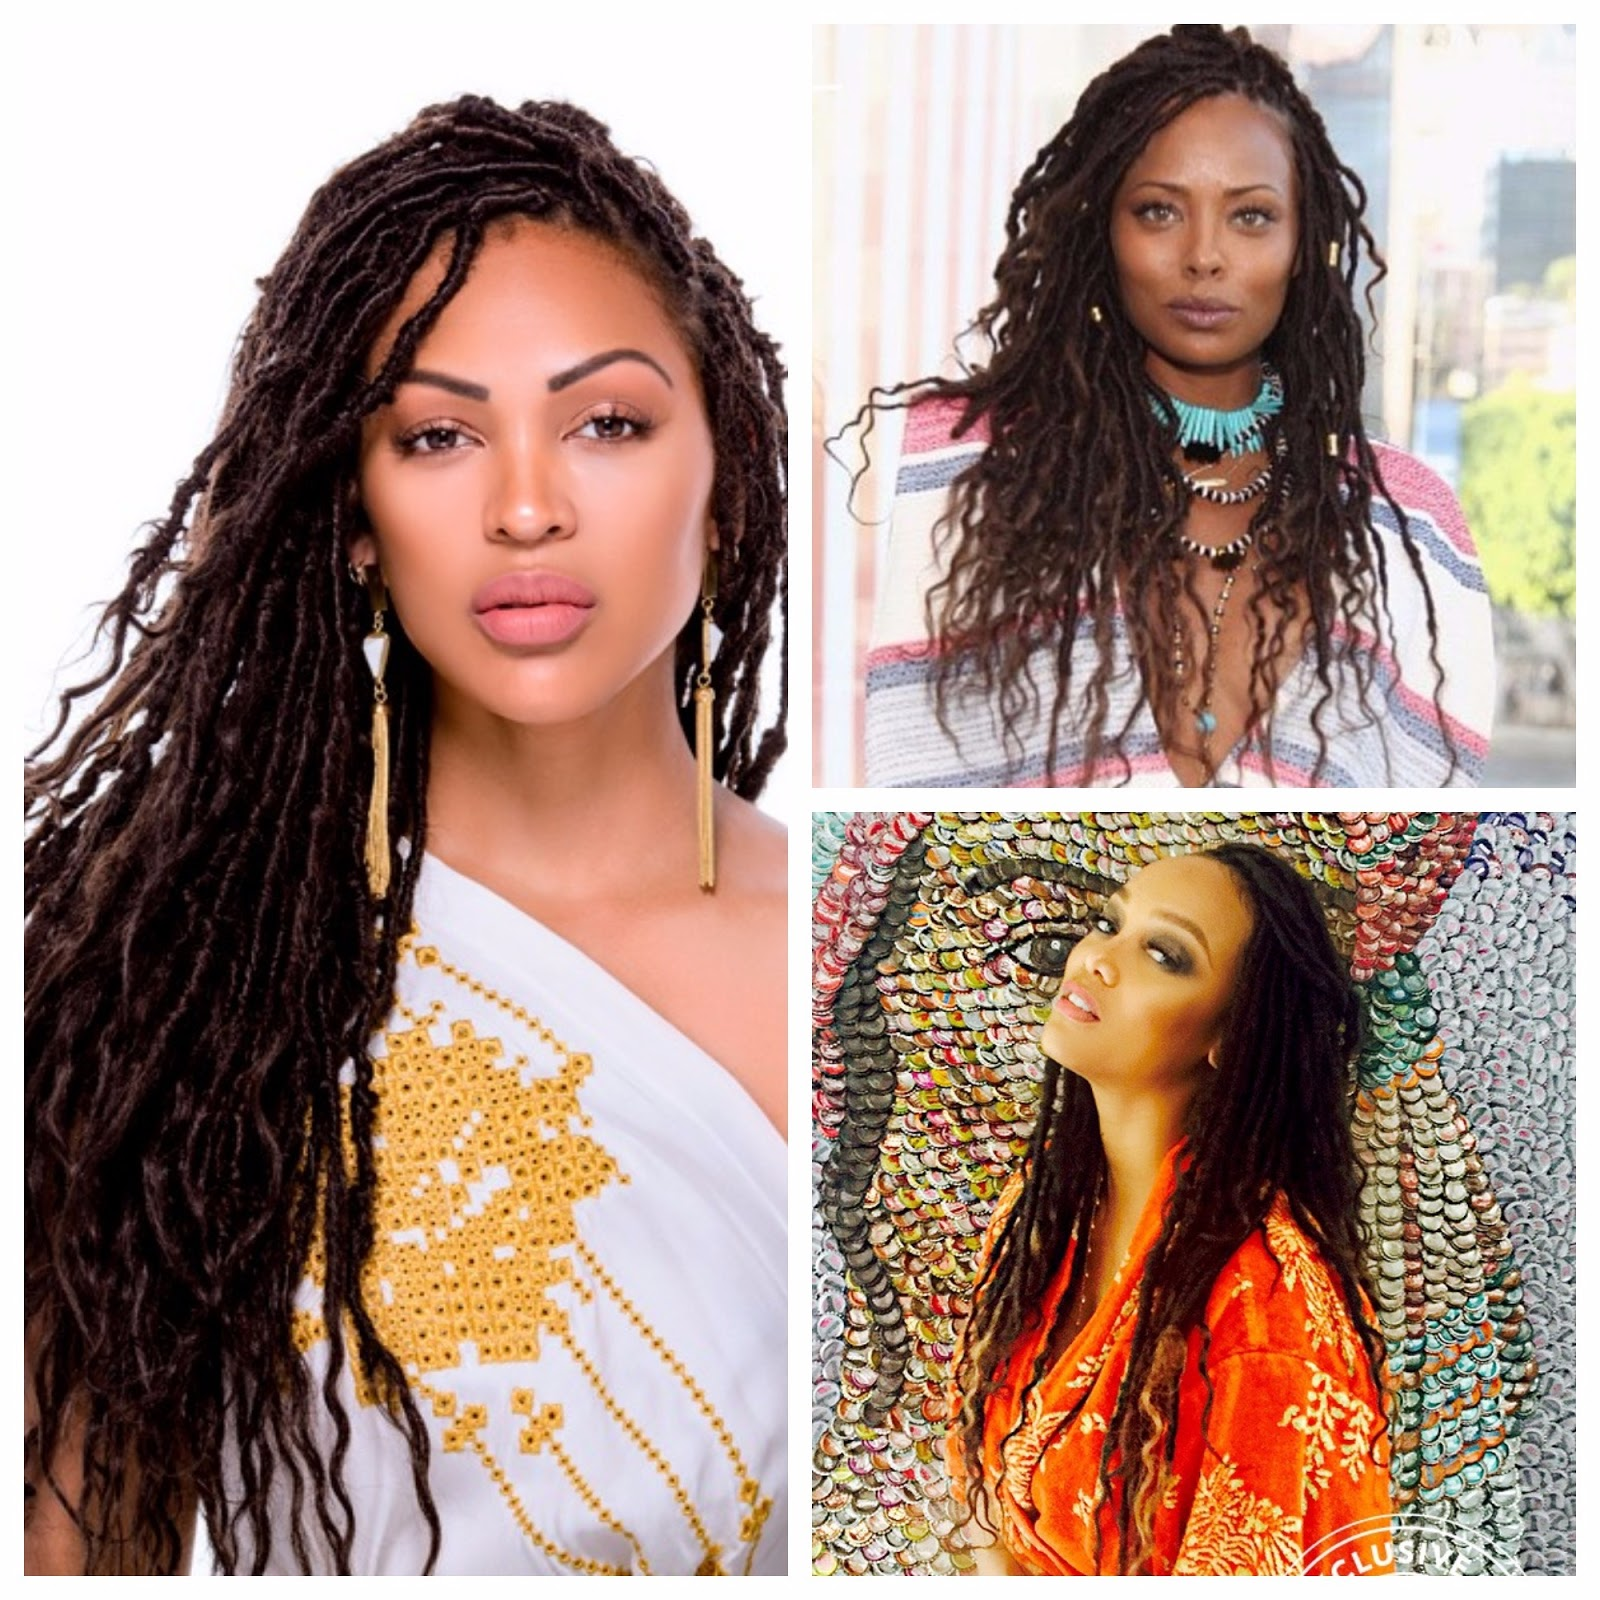 Some Time Last Year I Saw Dess Faux Locs On Megan Good And Got Instant Gotta Have It Syndrome So Went Searching Tyra Banks Eva